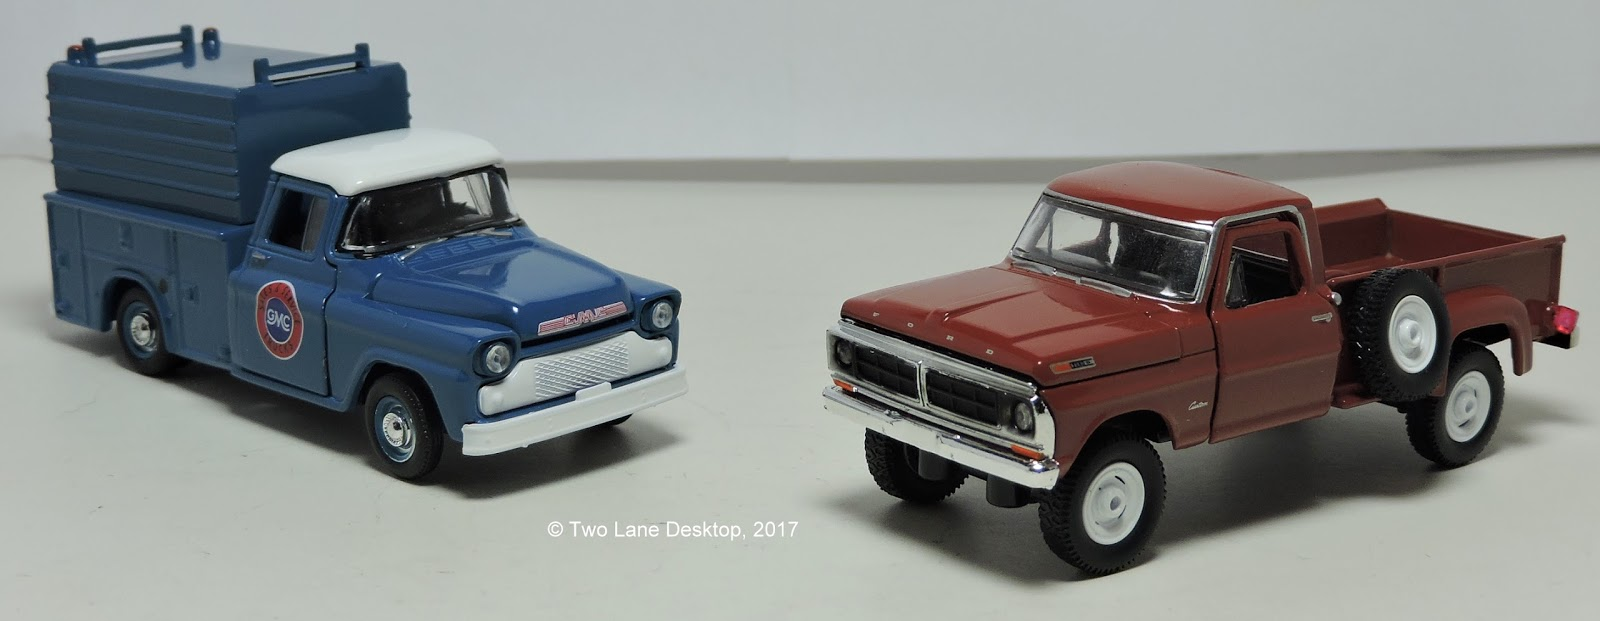 small resolution of here s a look at a few good m2 machines truck castings with their first time bed variations the gm trucks have already gotten the utility trailer package